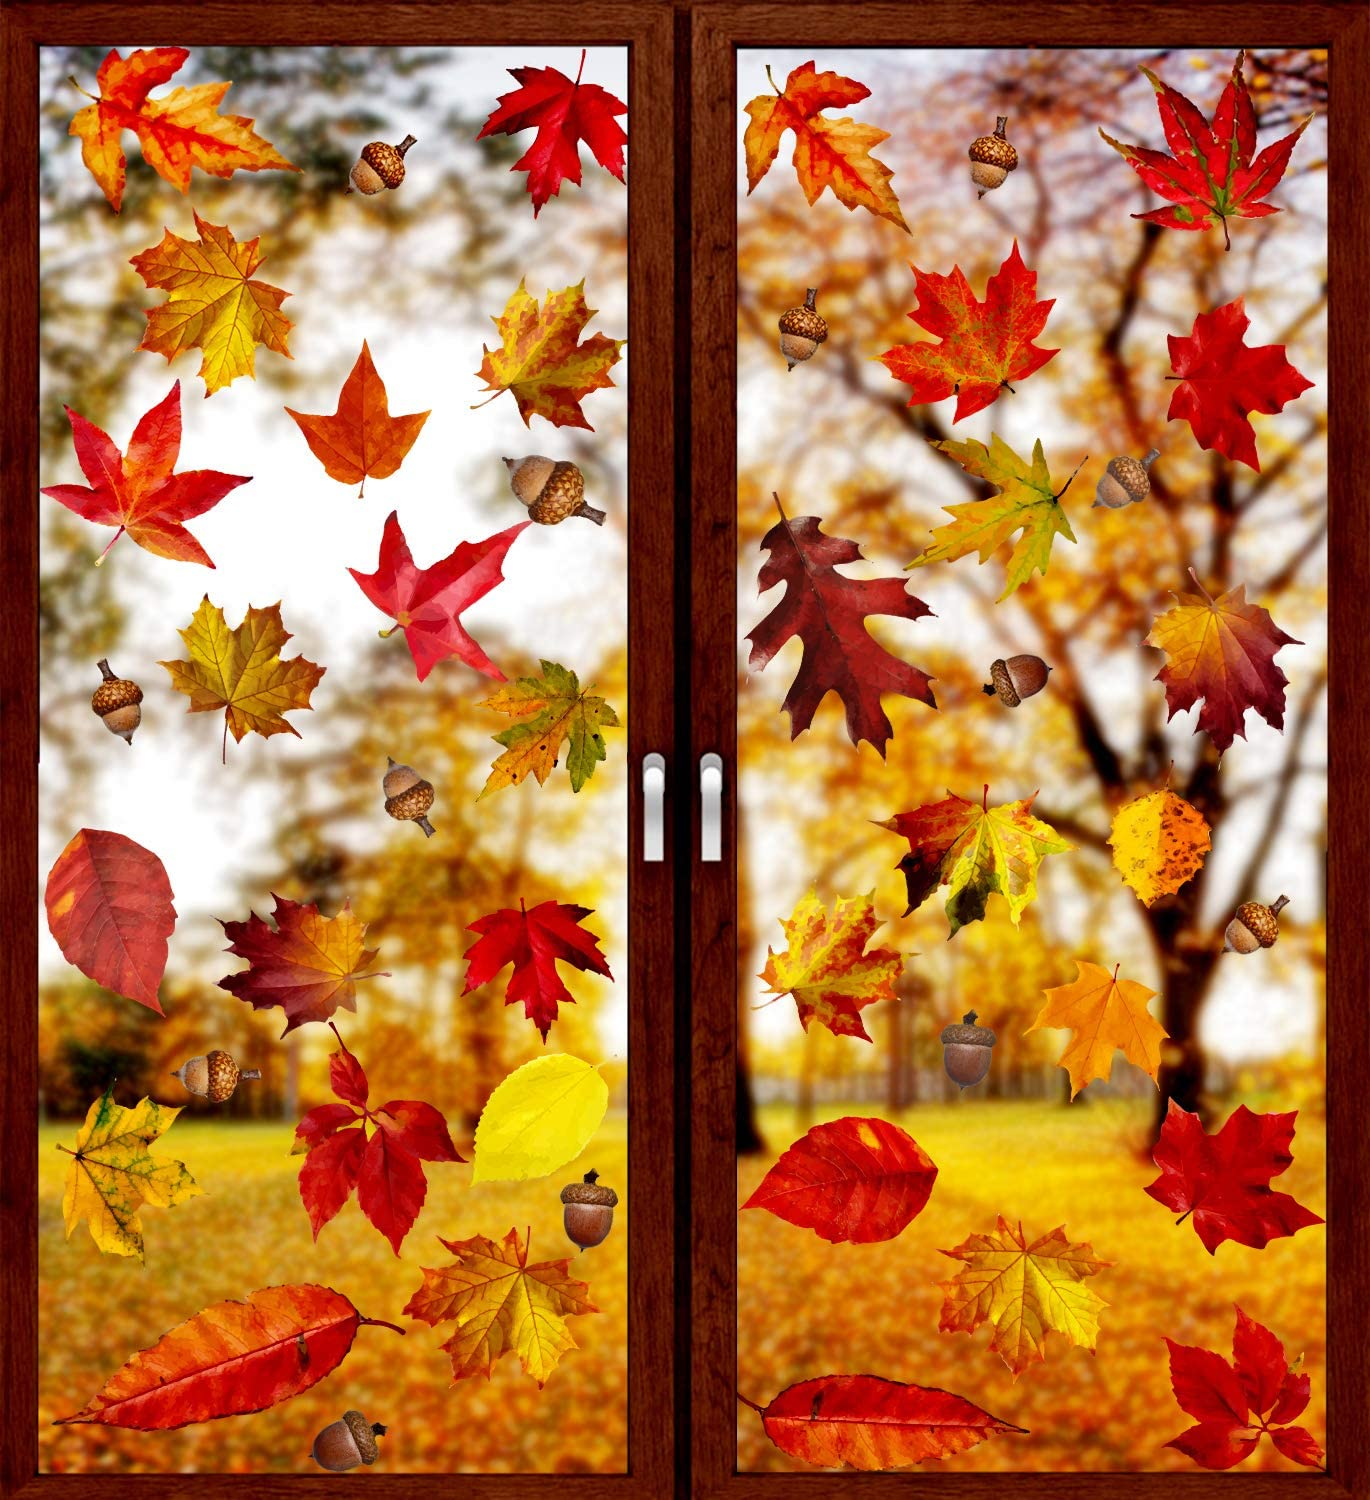 VEYLIN 6 Sheets 250Pcs Thanksgiving Window Clings, Autumn Maple Leaves Window Static Stickers for Thanksgiving Day Window Decoration